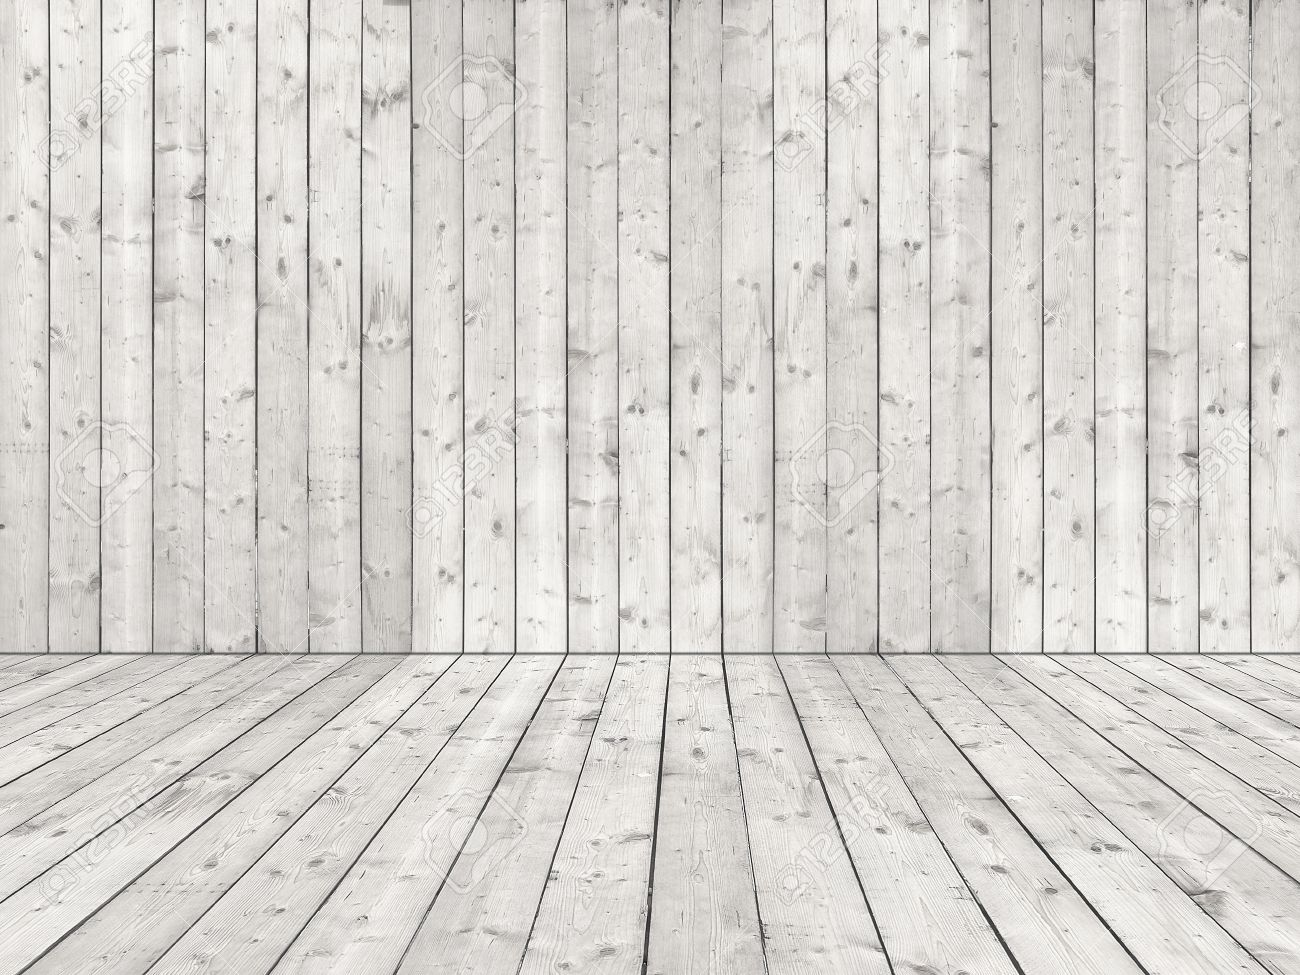 room with white wooden planked wall and flooring of rough sewed